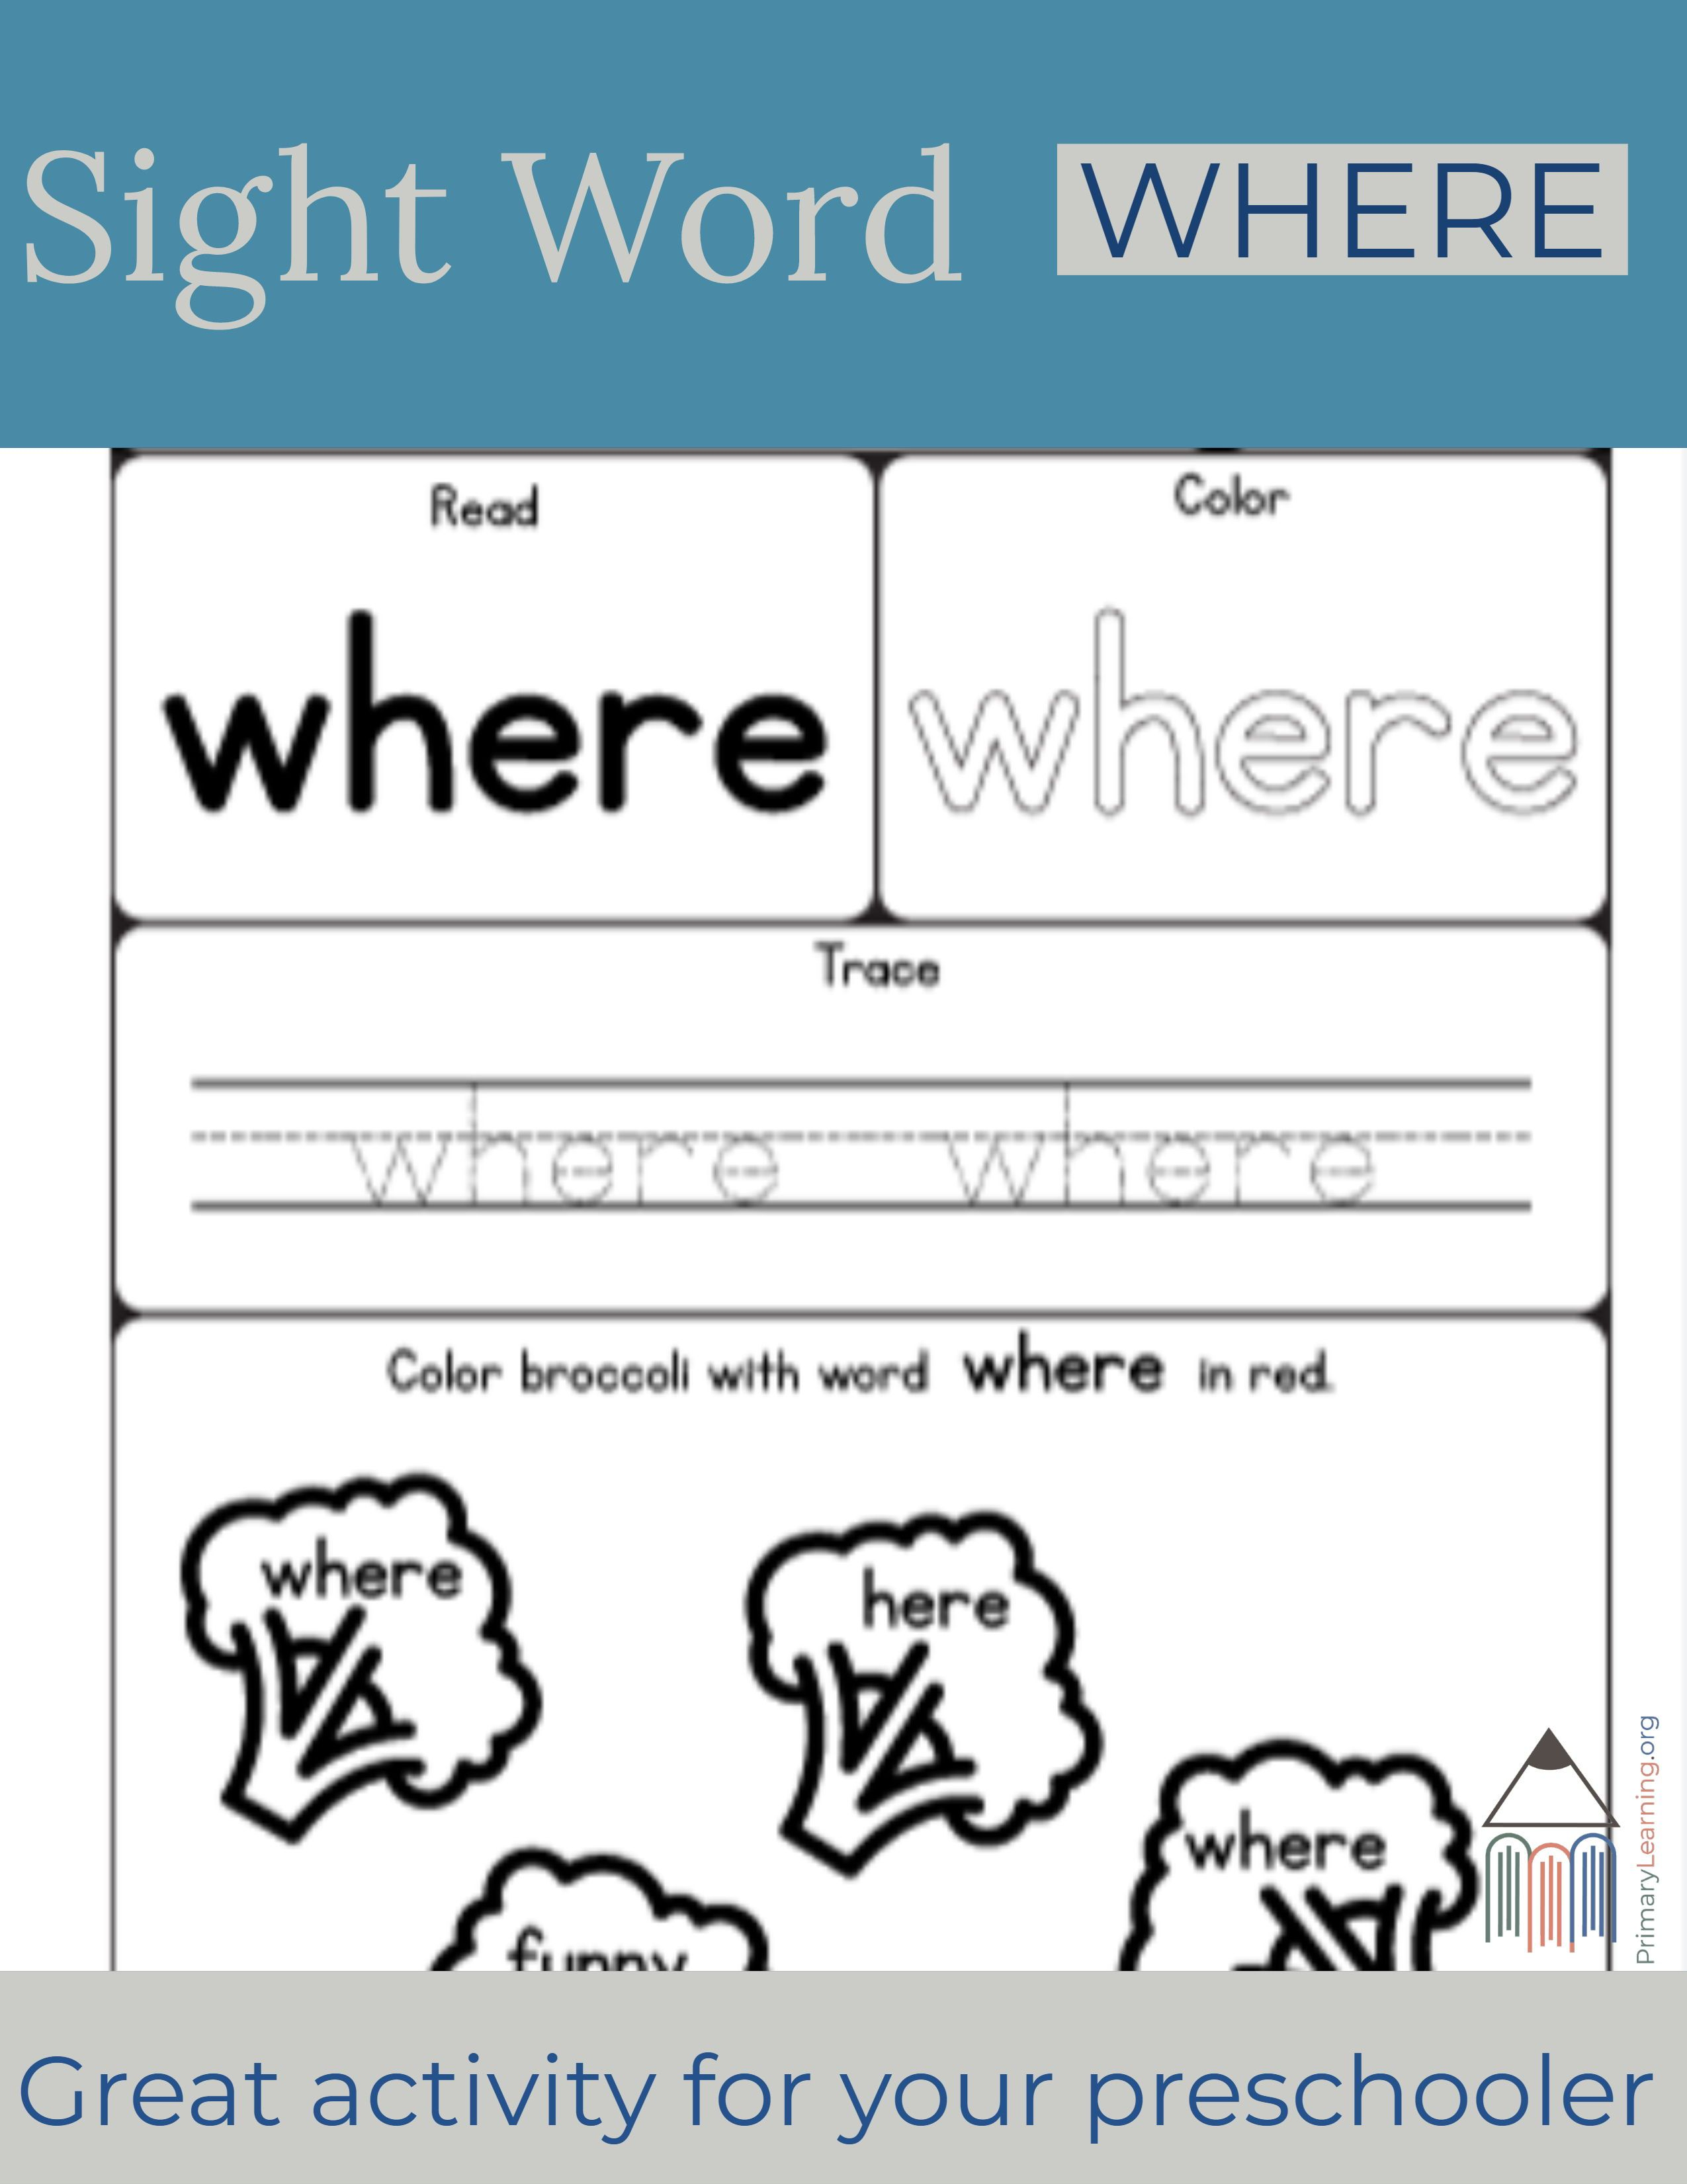 Sight Word Where Worksheet